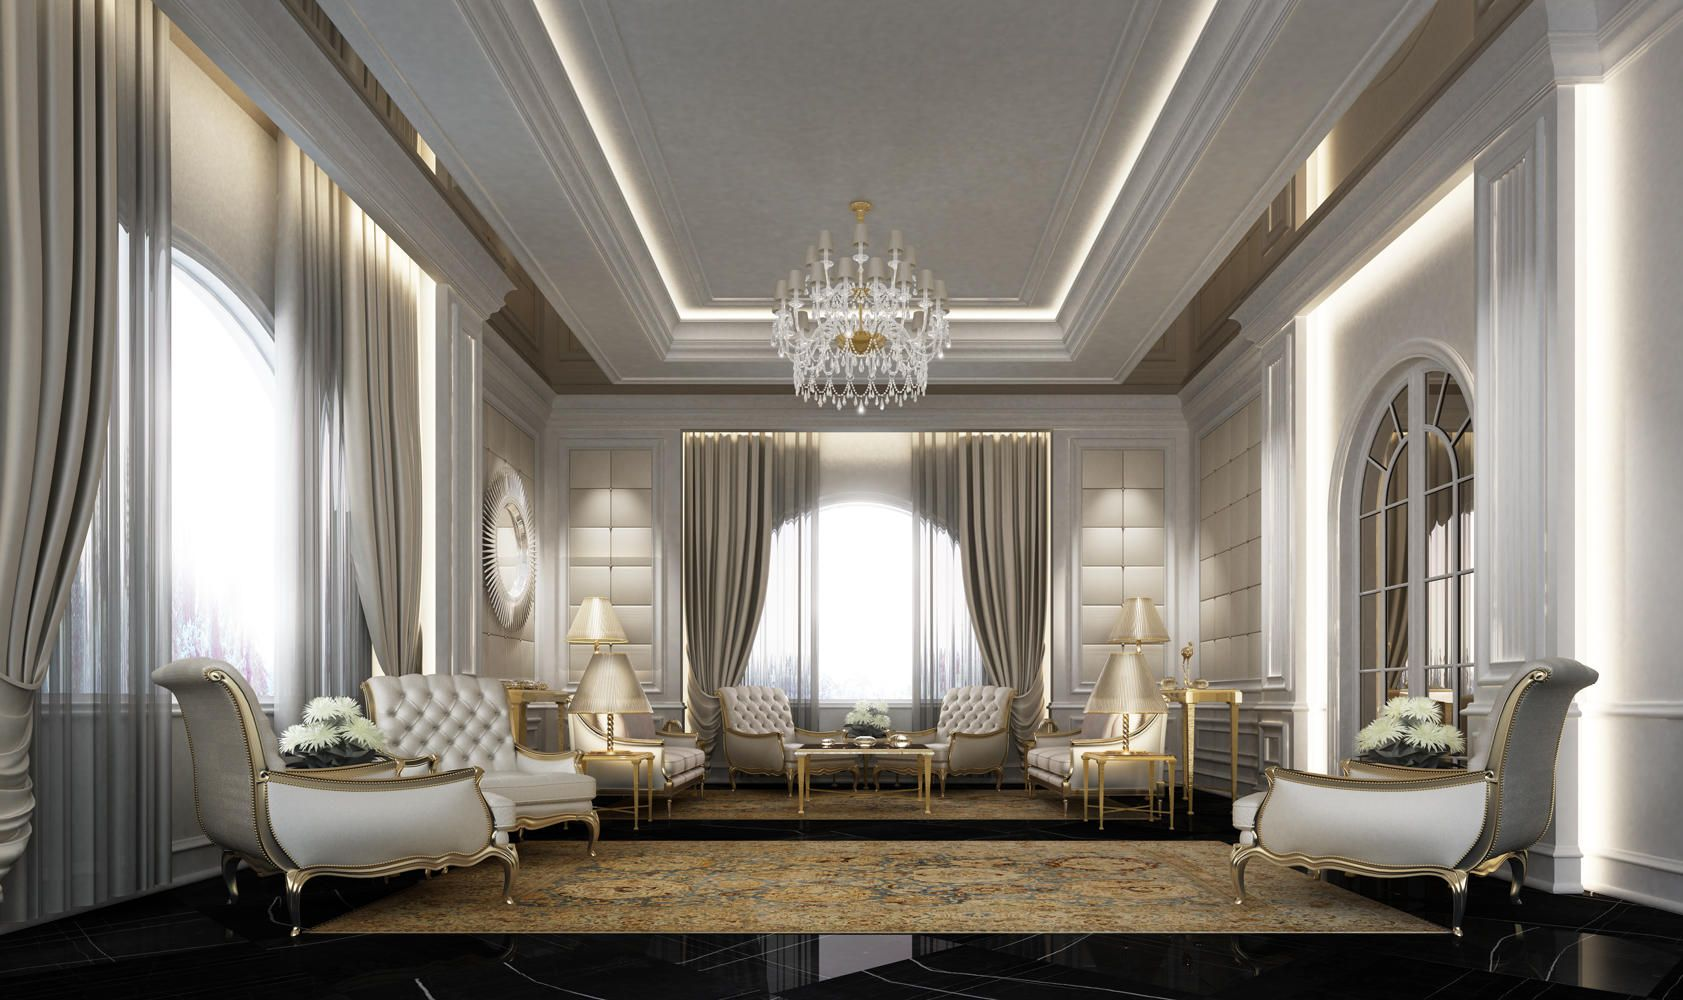 Arabic majlis designs ions design interior design for Interior designs pictures